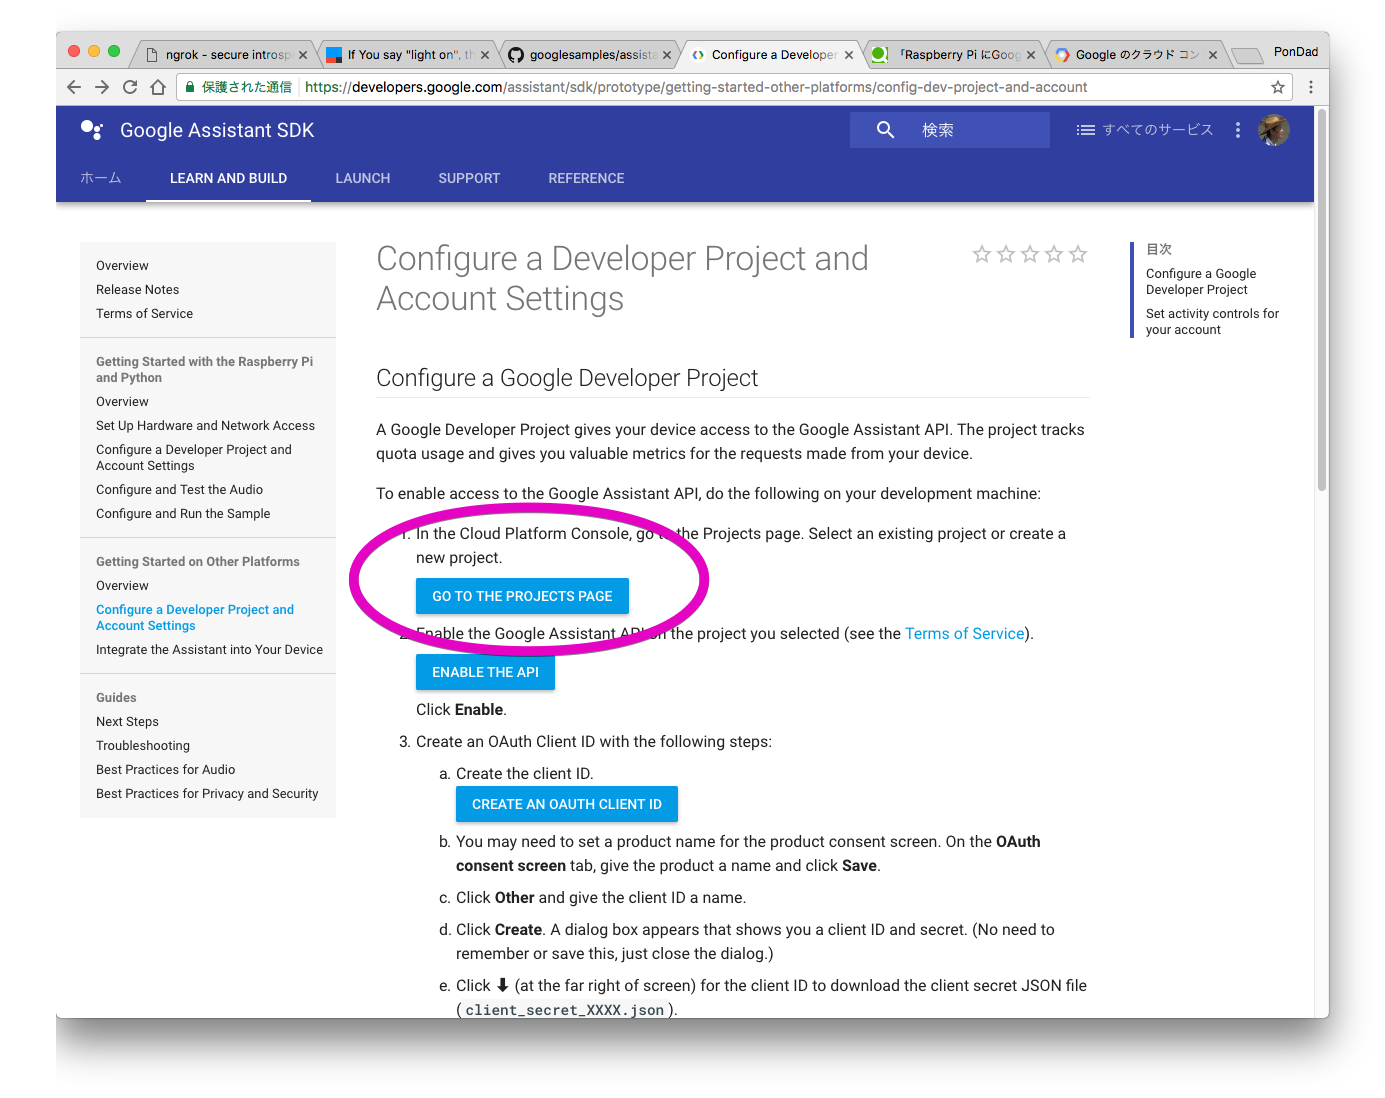 Configure a Developer Project and Account Settings  |  Google Assistant SDK  |  Google Developers 2017-04-29 23-07-20.png